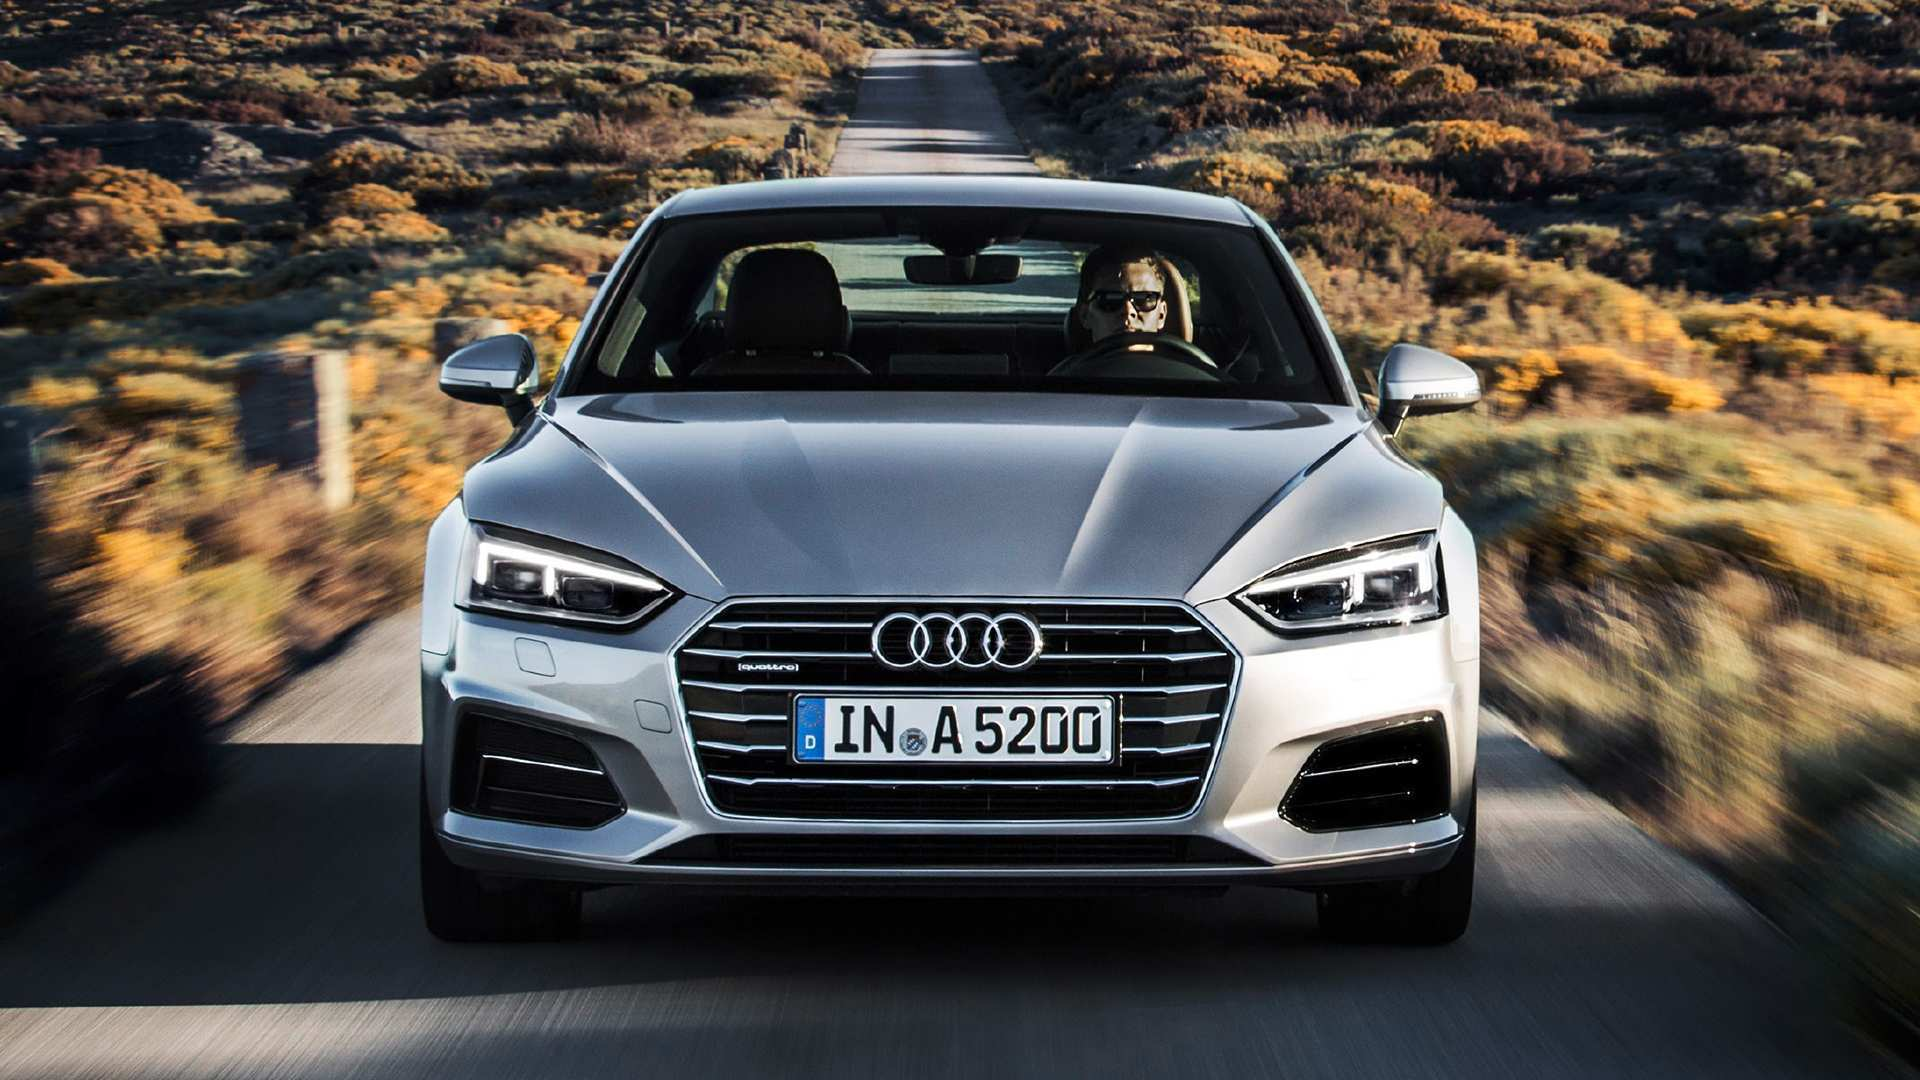 57 The 2019 Audi A5 Coupe Price Design And Review